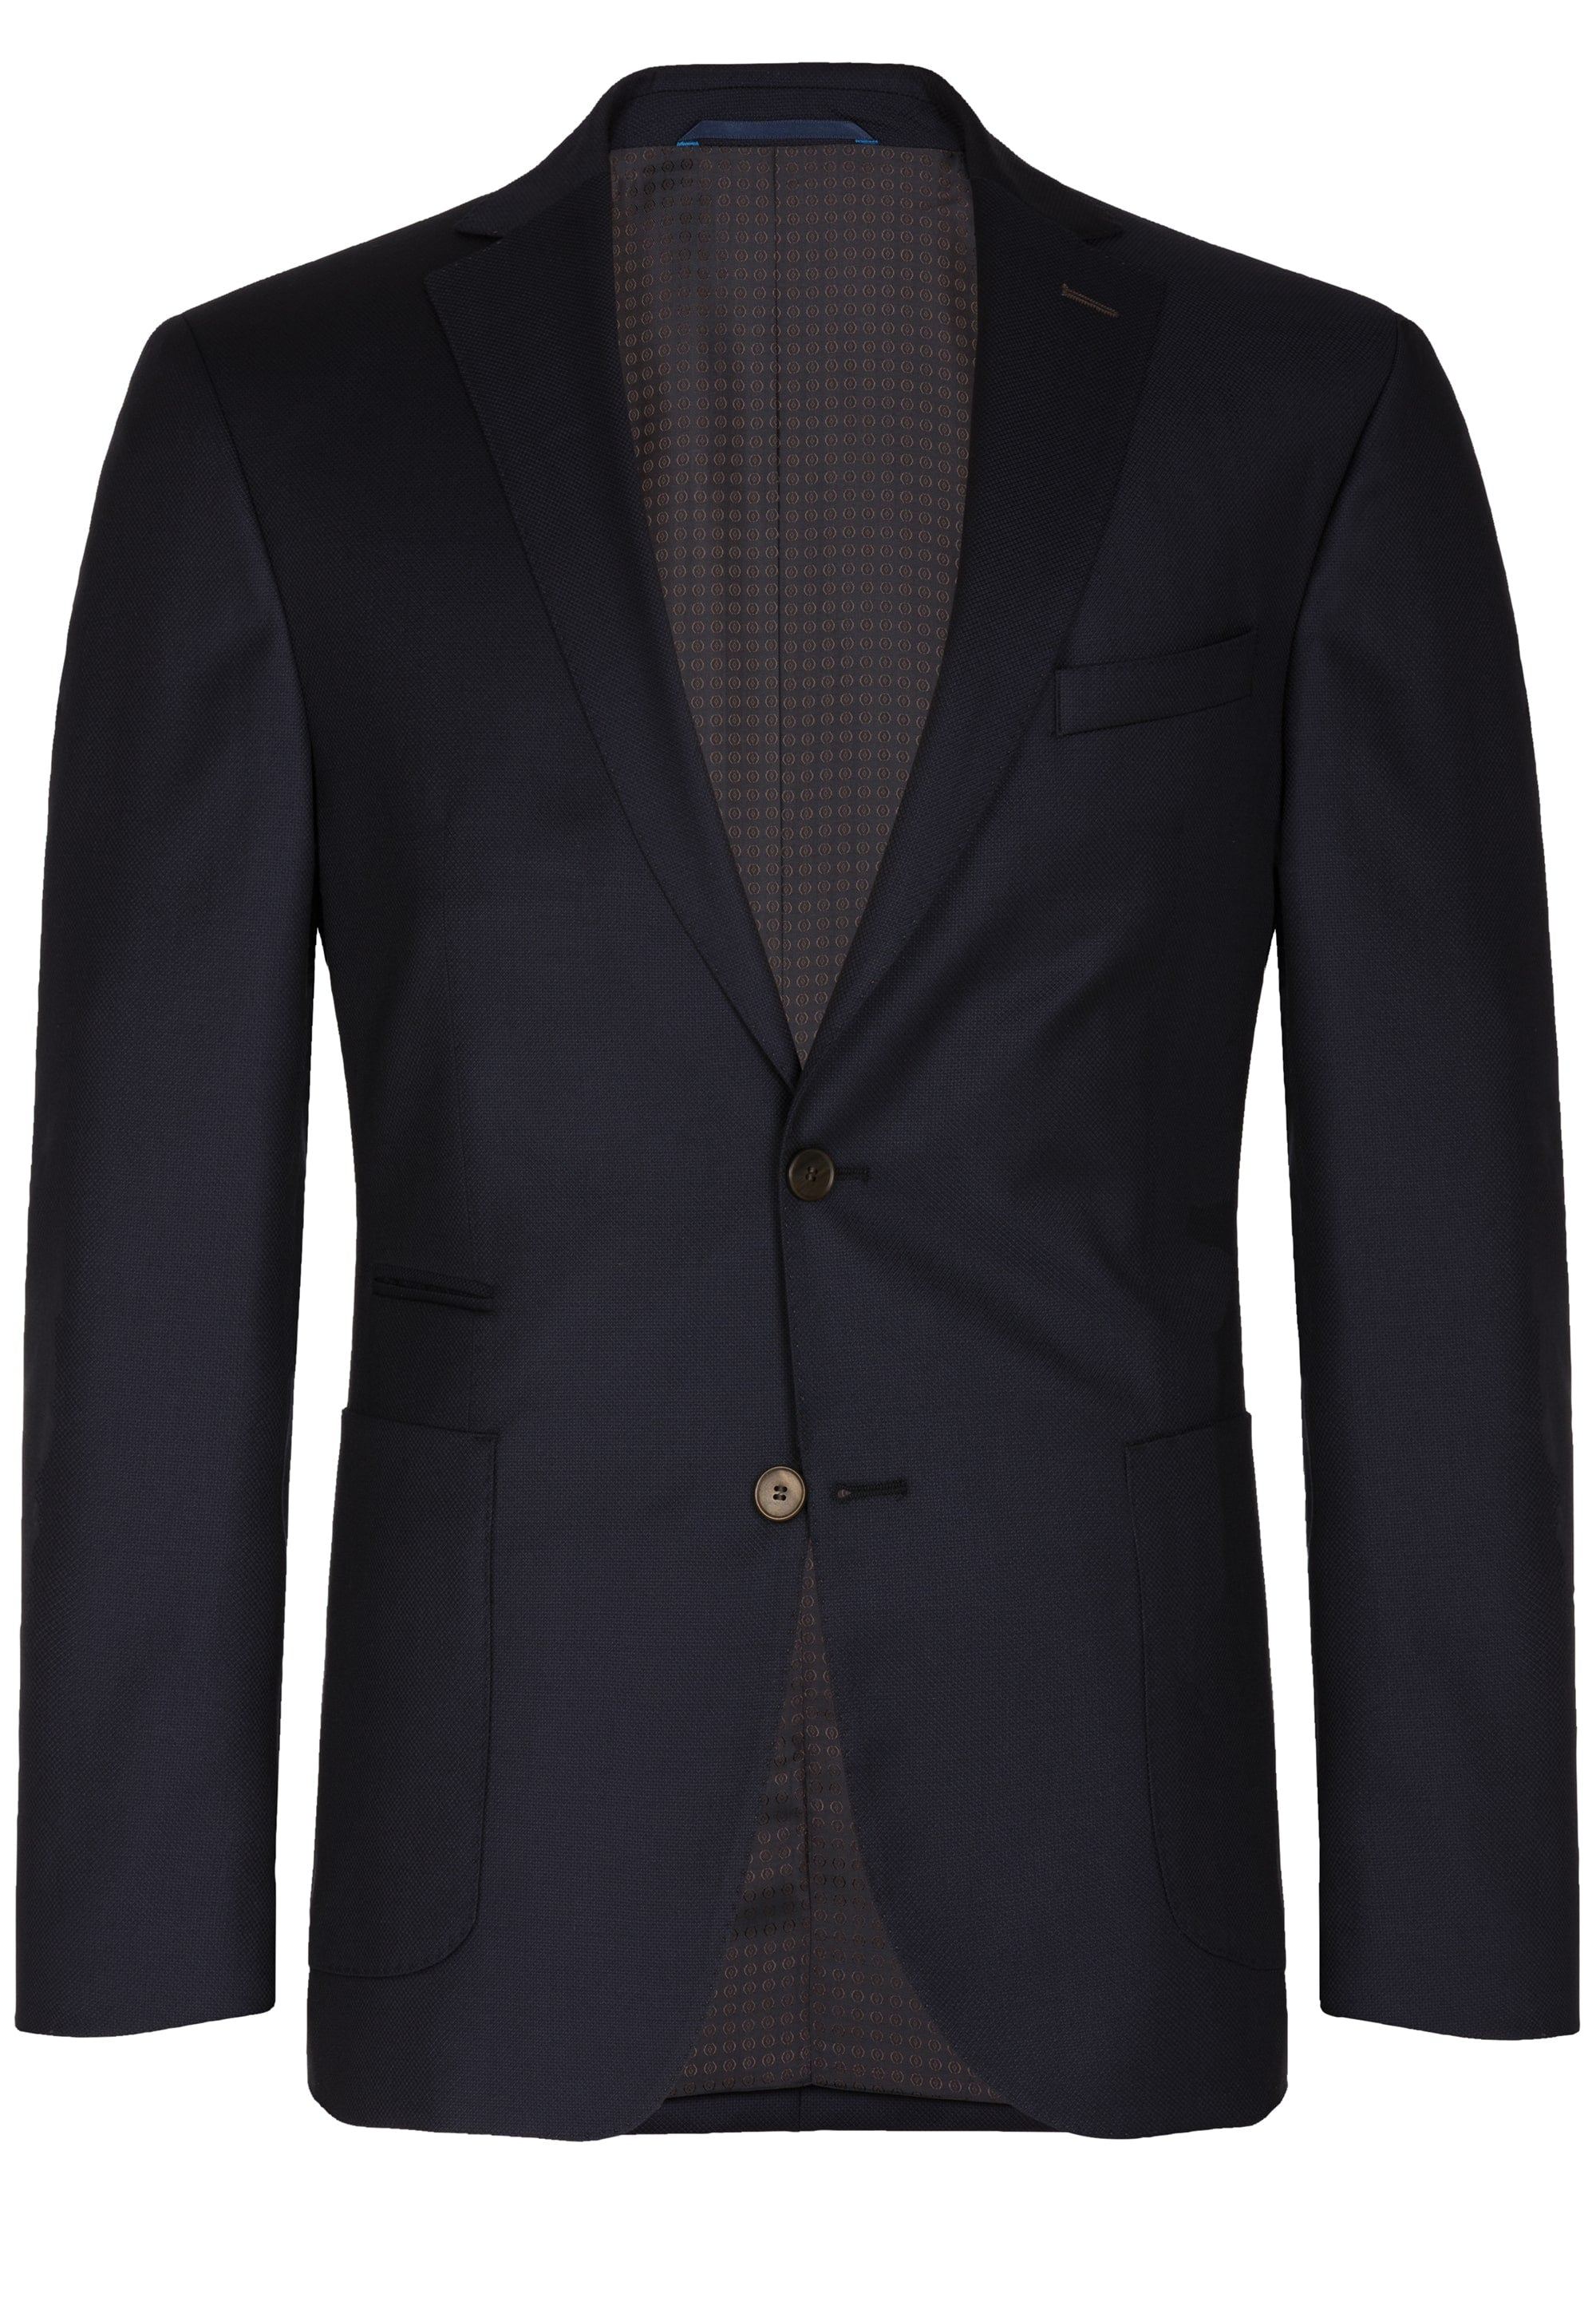 Carl Gross Navy Blazer